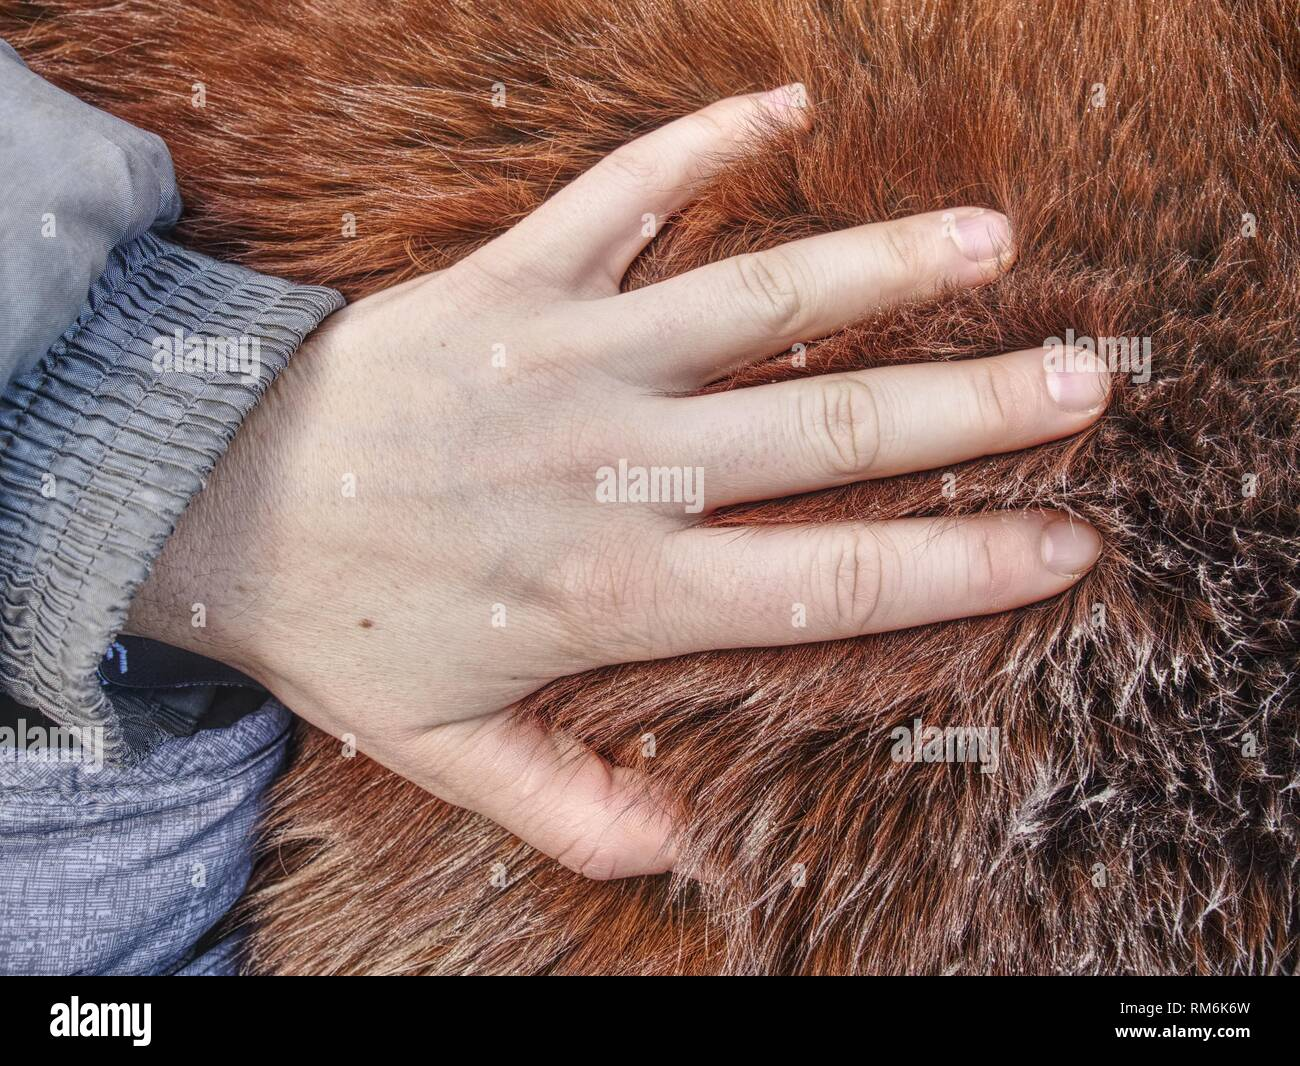 Hand in horse thick warm leather, warm winter fur on body of outside live horse. - Stock Image